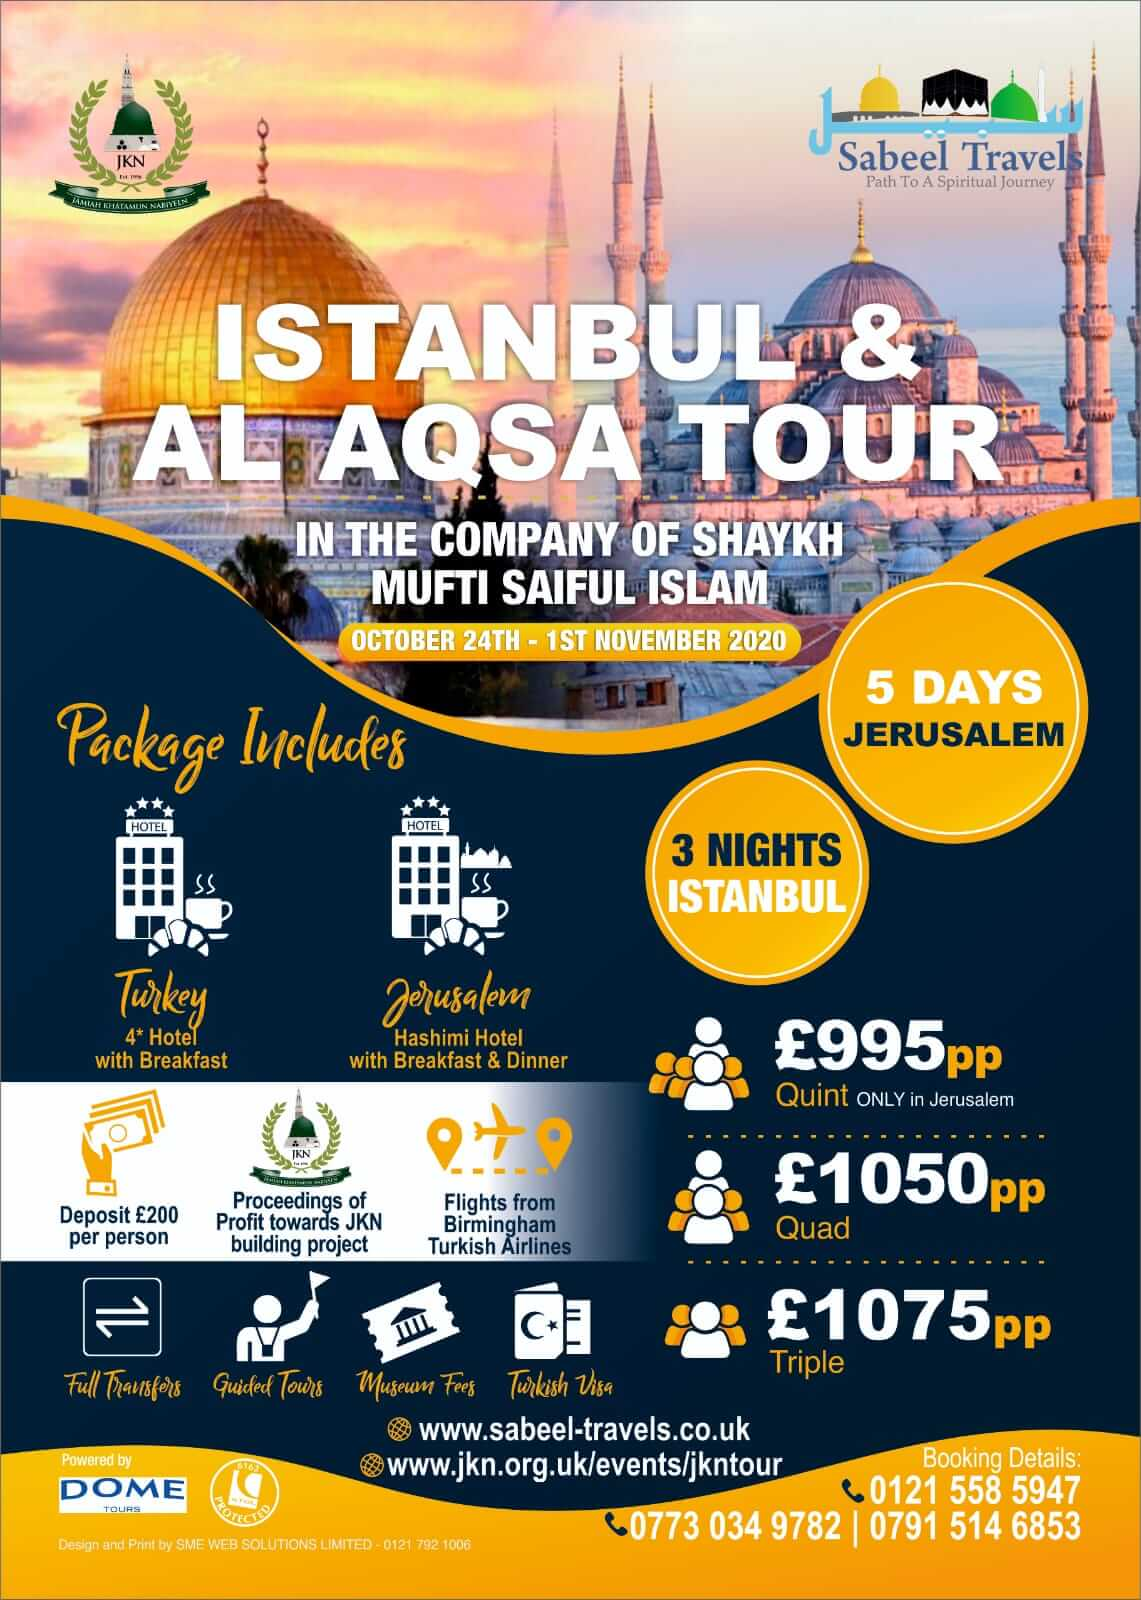 https://sabeel-travels.co.uk/masjid-aqsa-packages/istanbul-al-aqsa-tour-2020/